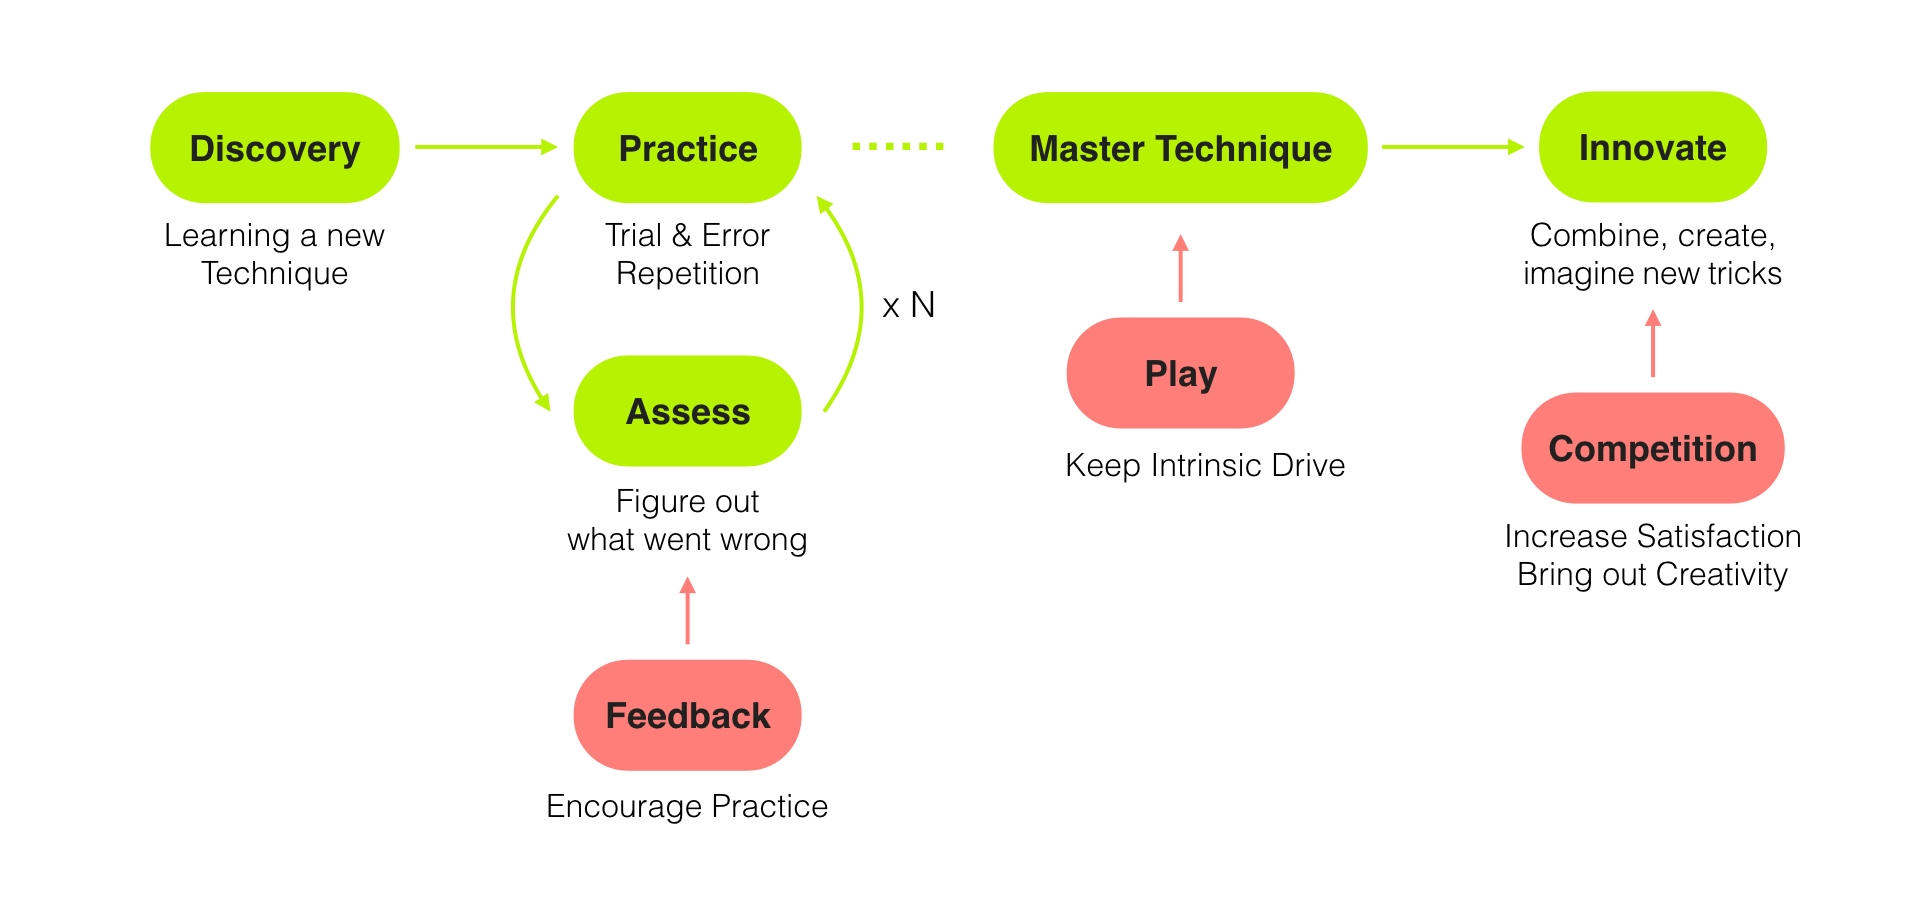 Our model on how musical feedback (in red) can encourage the learning process.